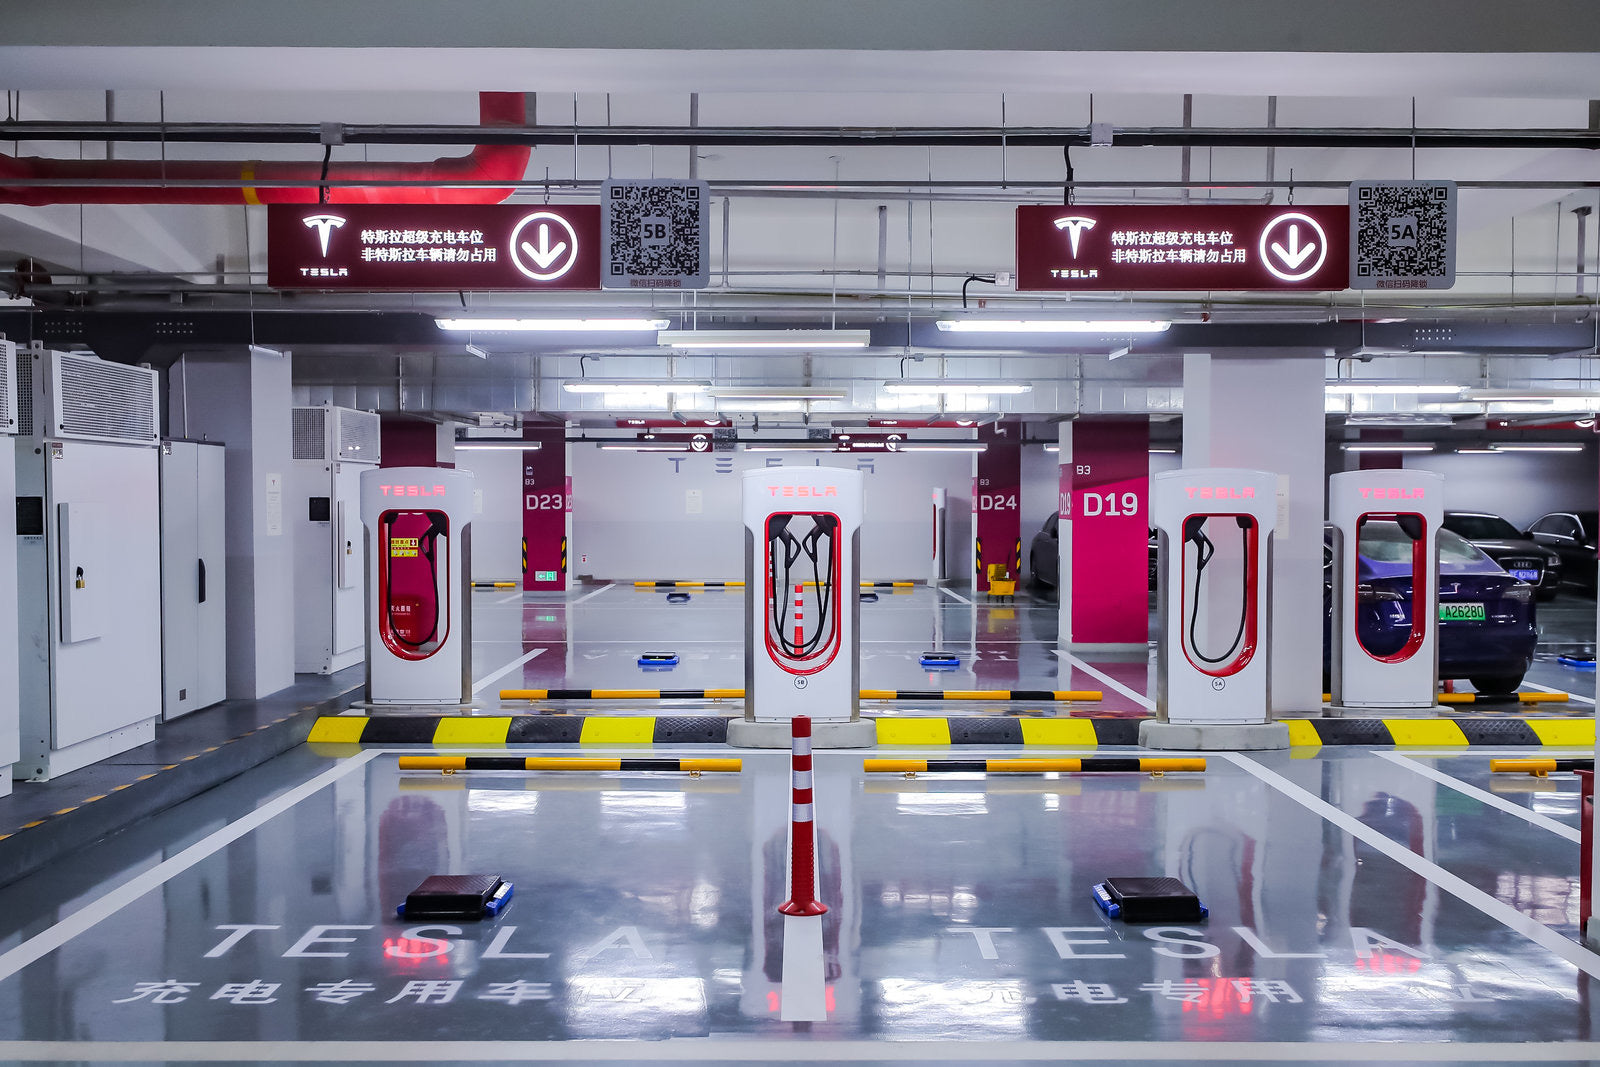 Tesla Opens North China's Largest V3 Supercharging Station in Beijing, as Demand Continues to Spike